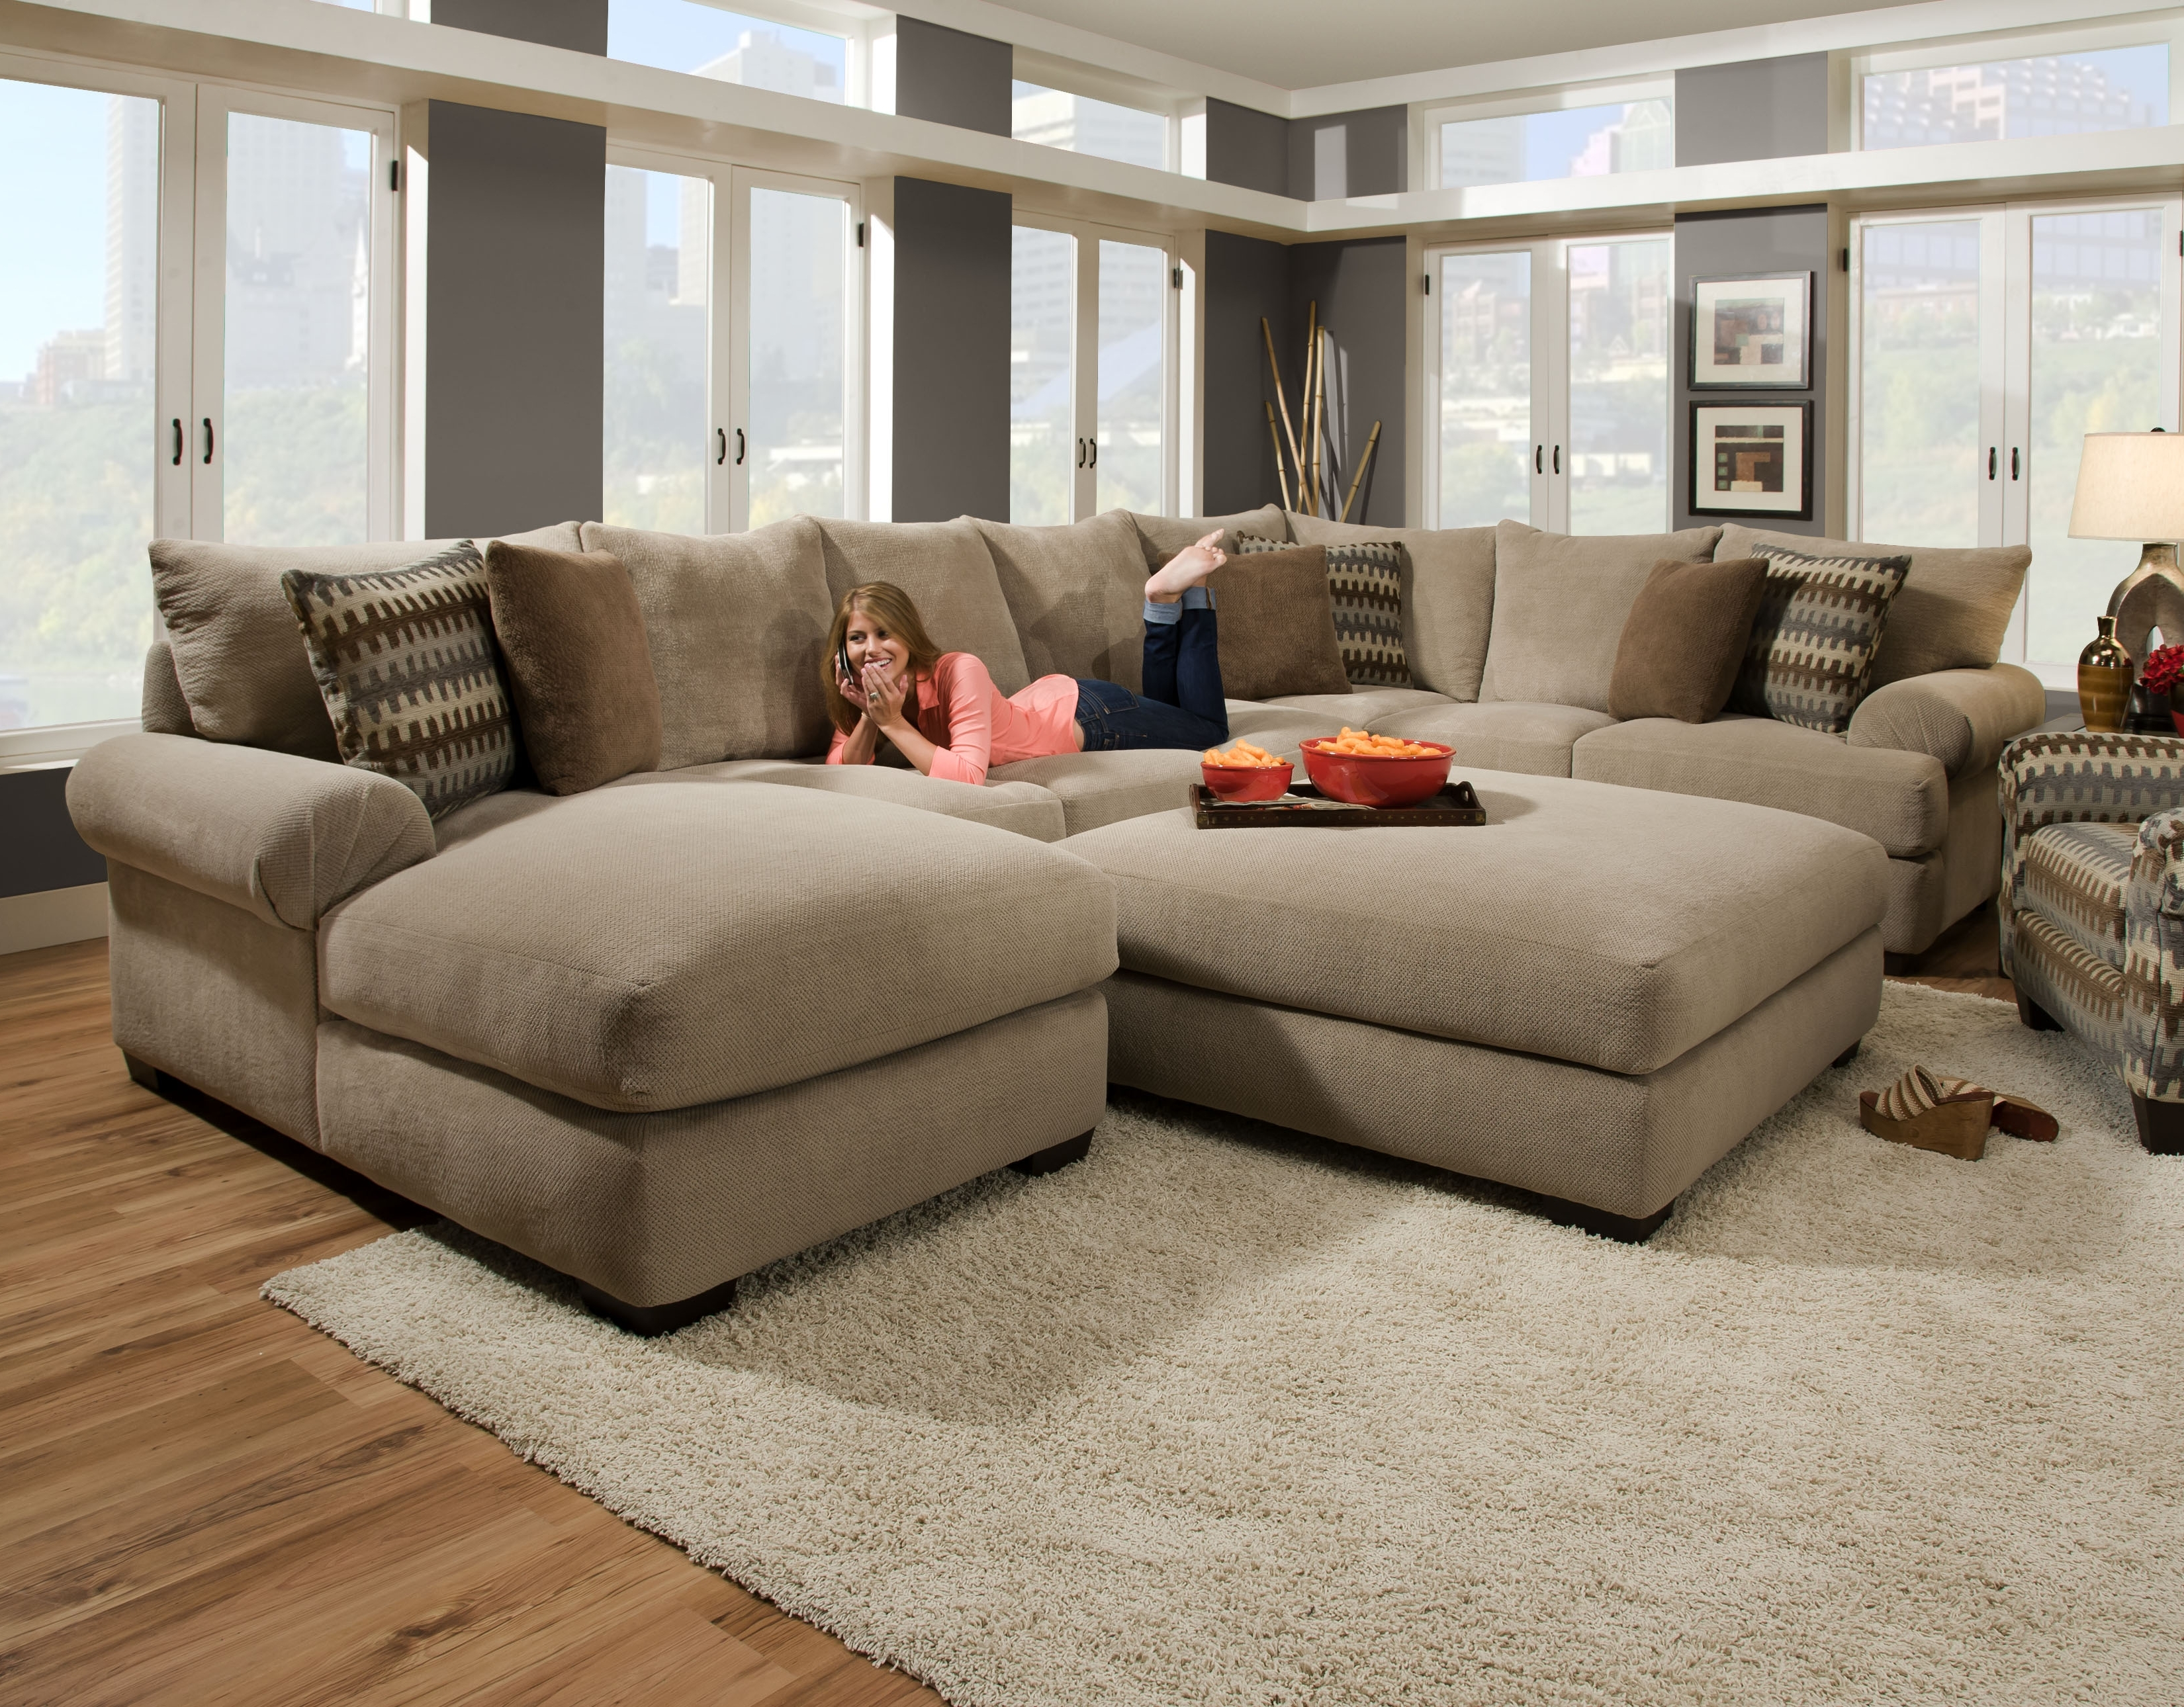 Bocha Stone 3Pc Intended For 2018 Layaway Sectional Sofas (View 6 of 15)